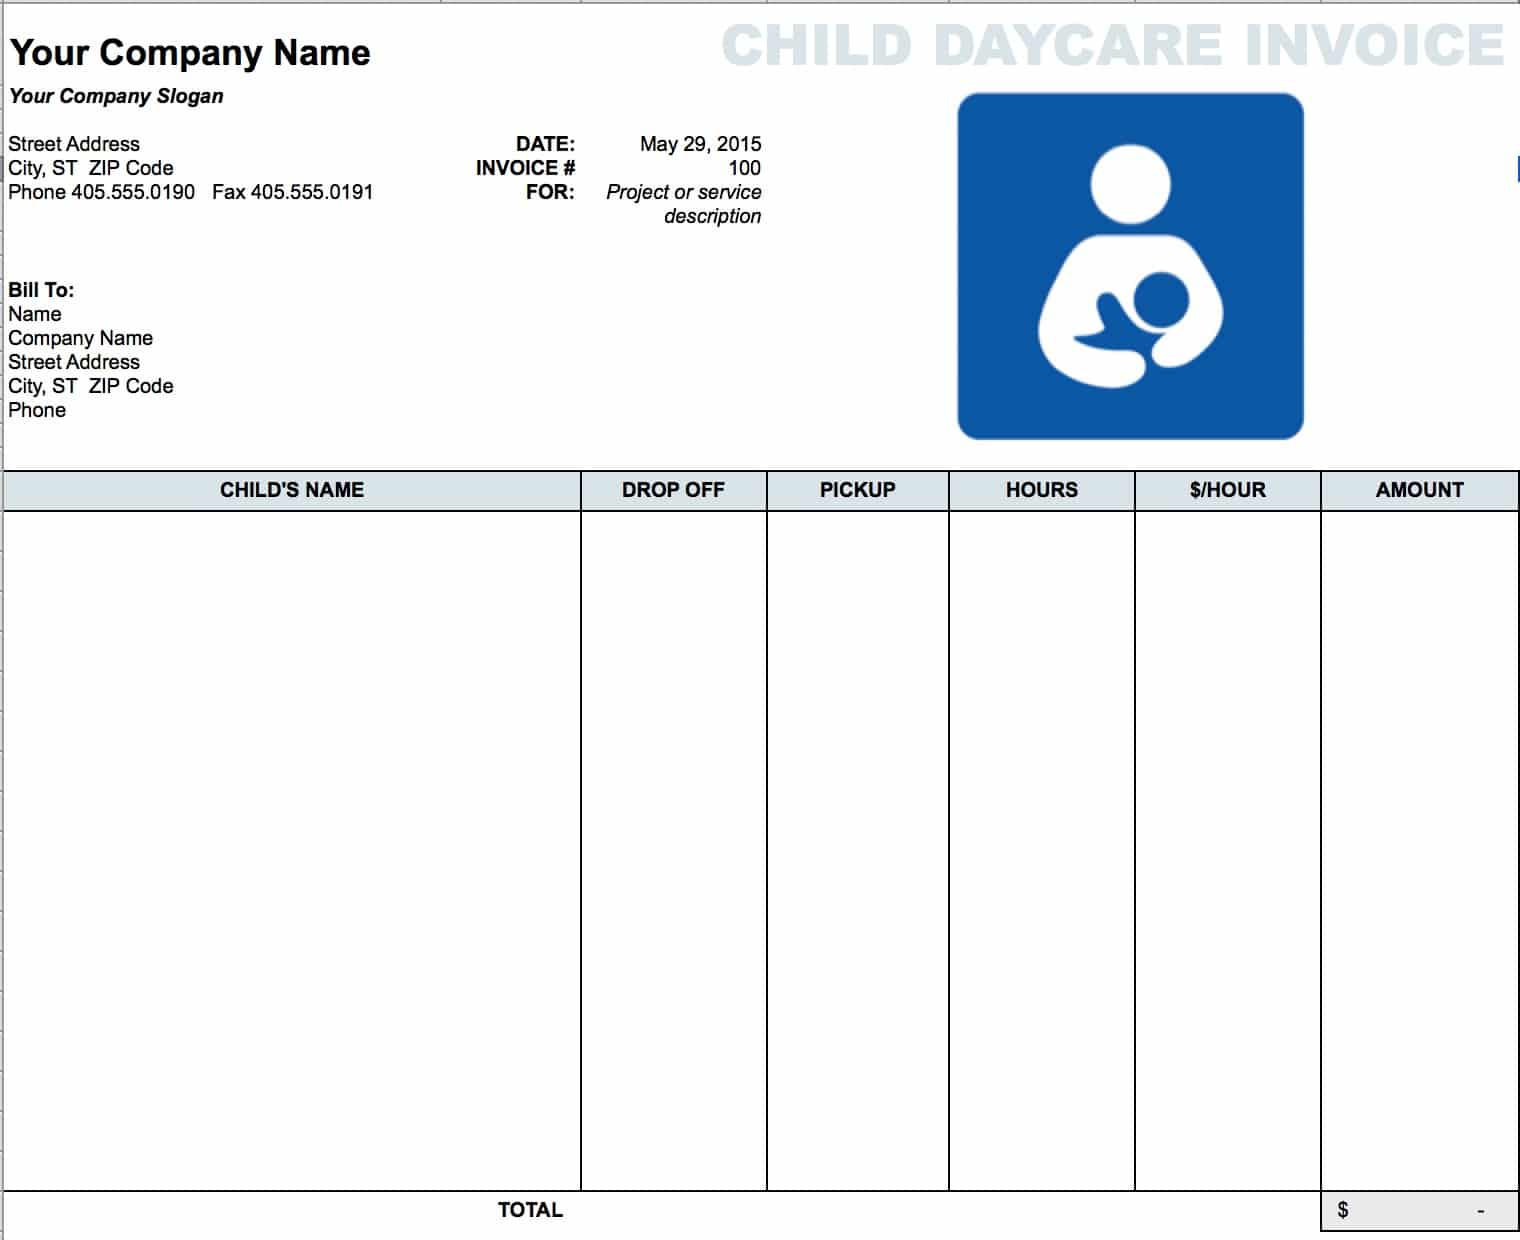 blank invoice templates in pdf word excel daycare child